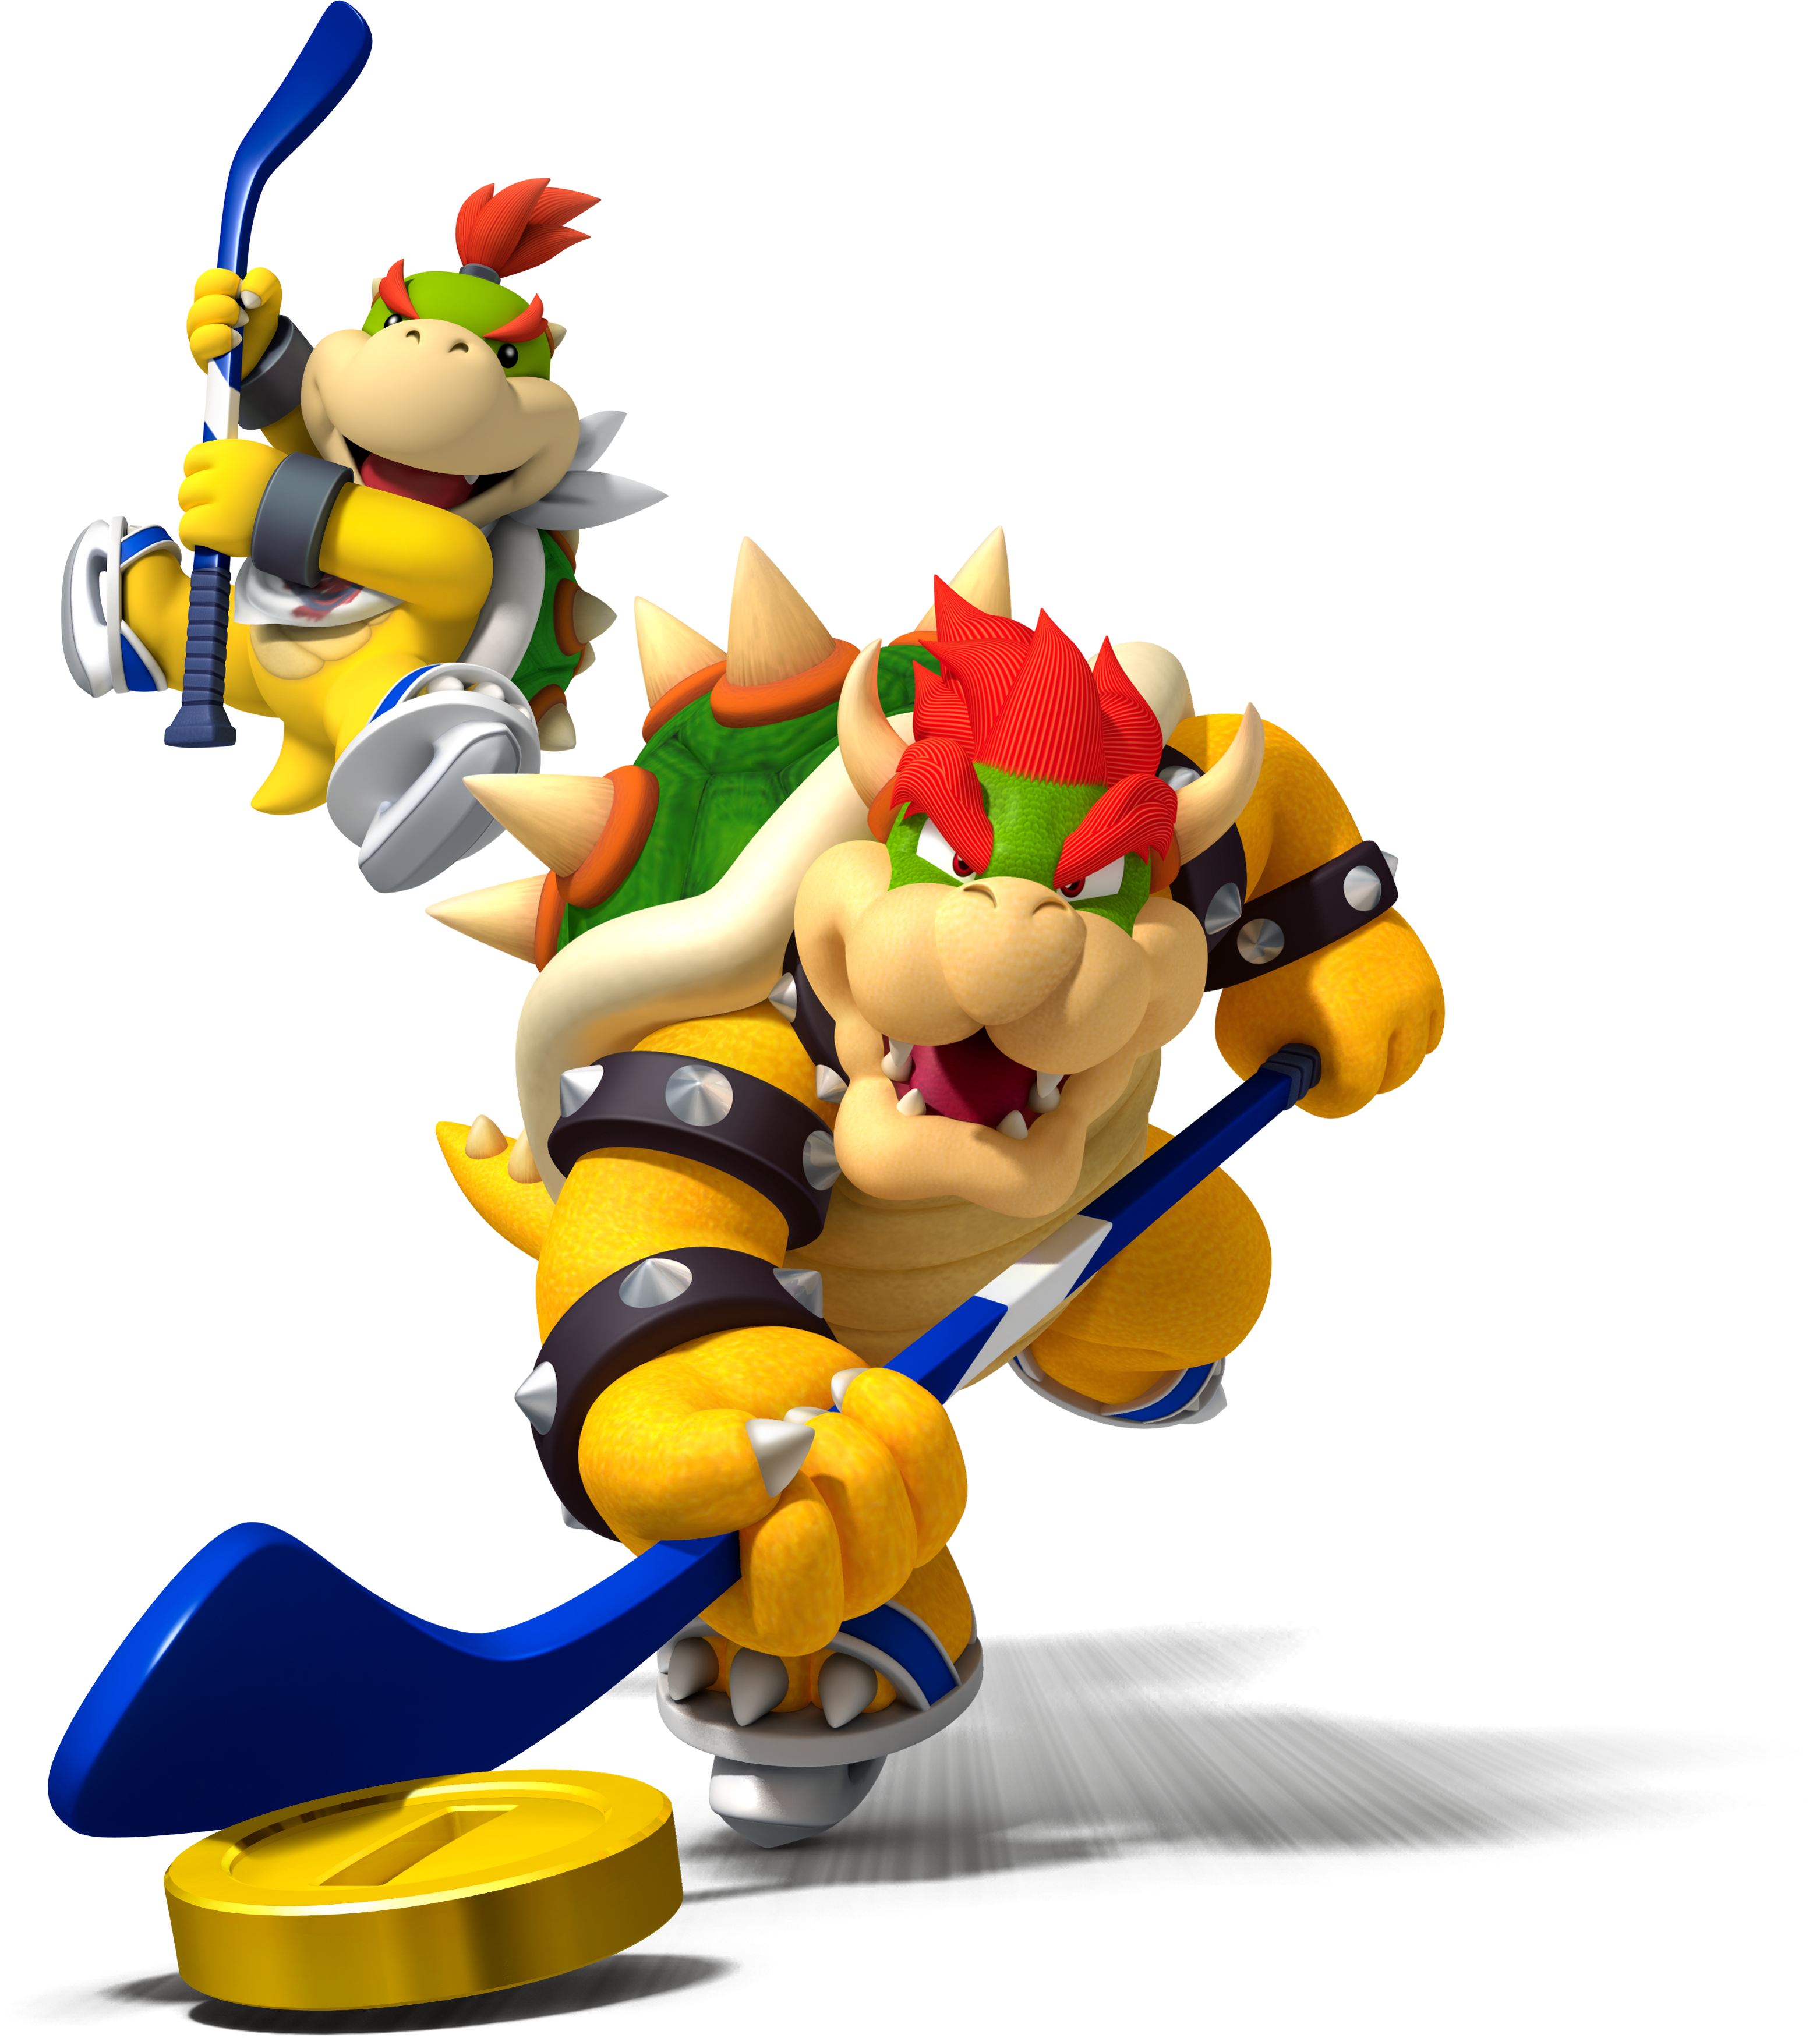 File:Bowser family Ice hockey.png